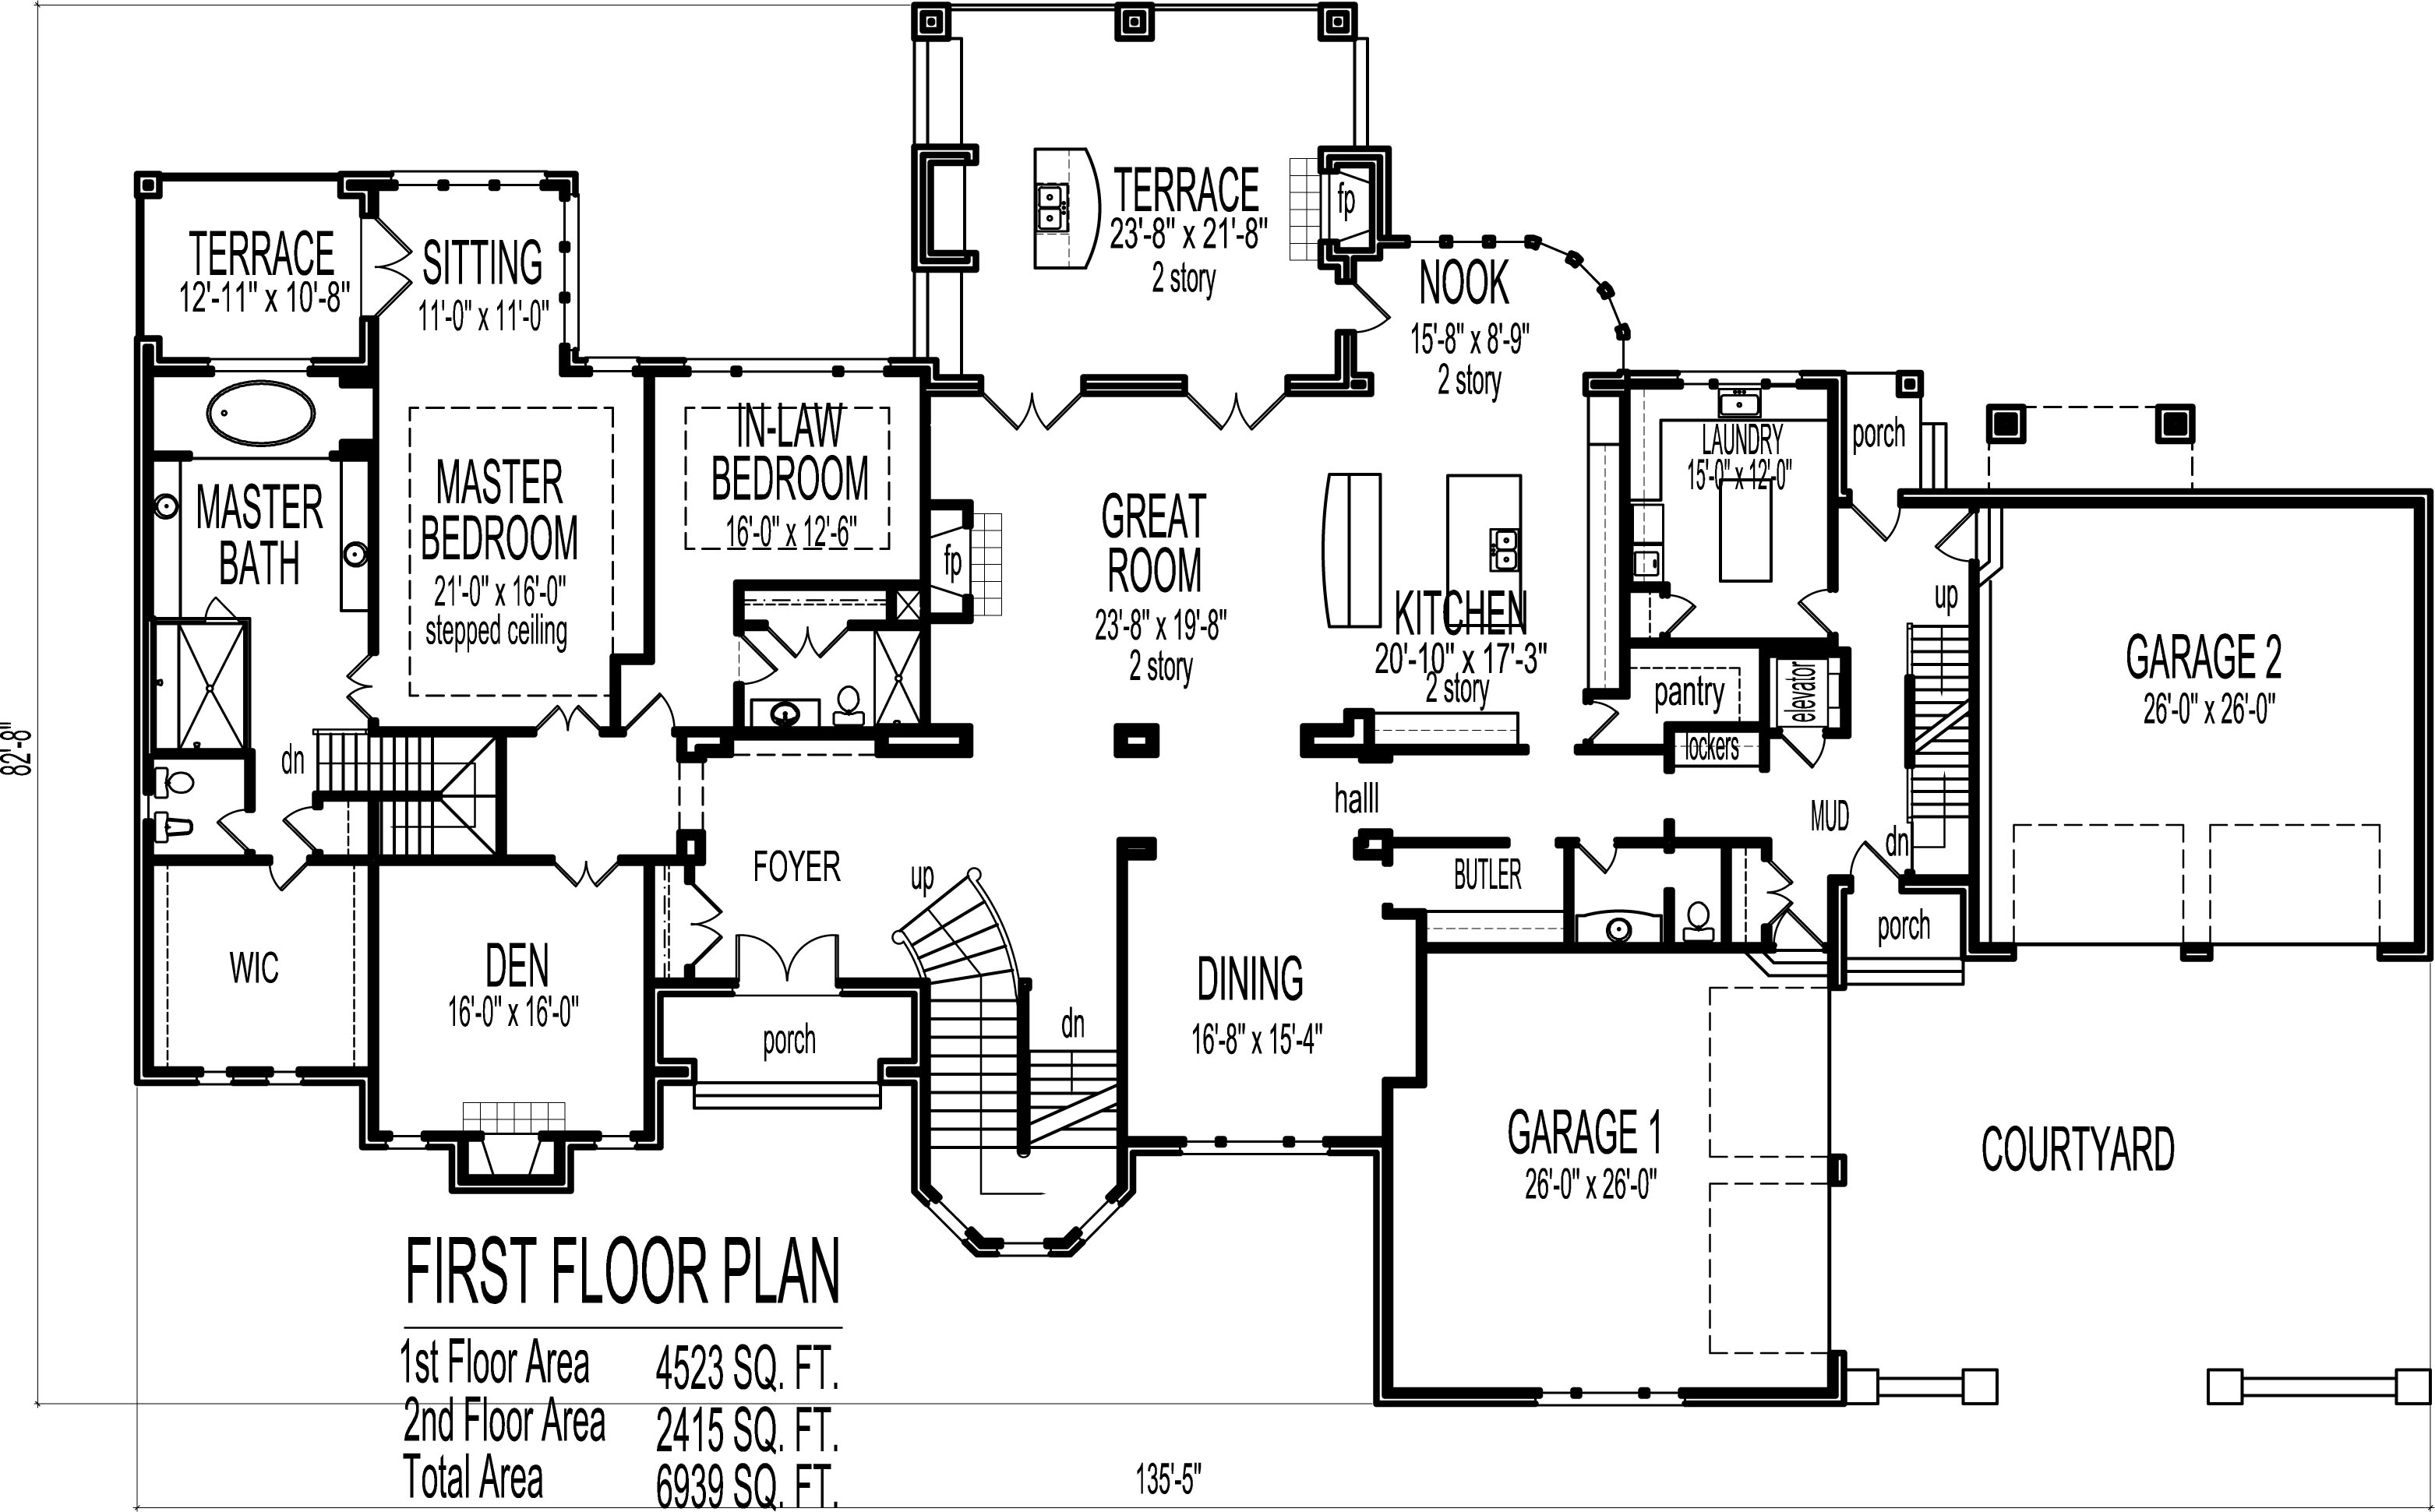 Dream house floor plans blueprints 2 story 5 bedroom large for 1 5 house plans